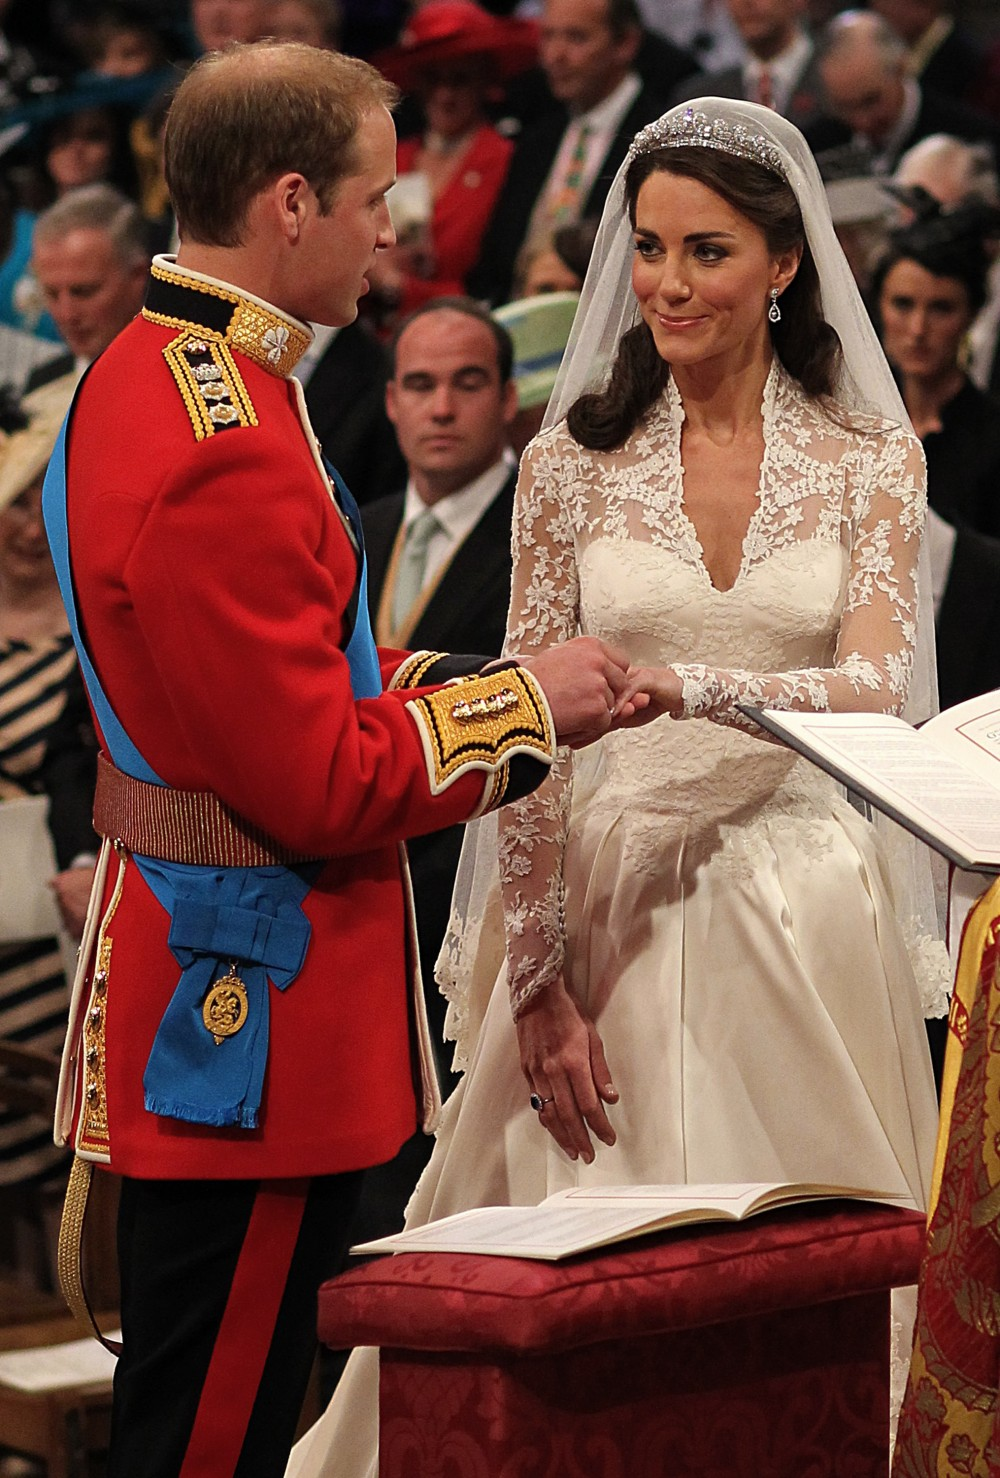 HQ Images 4 U: Prince William and Catherine Middleton ...